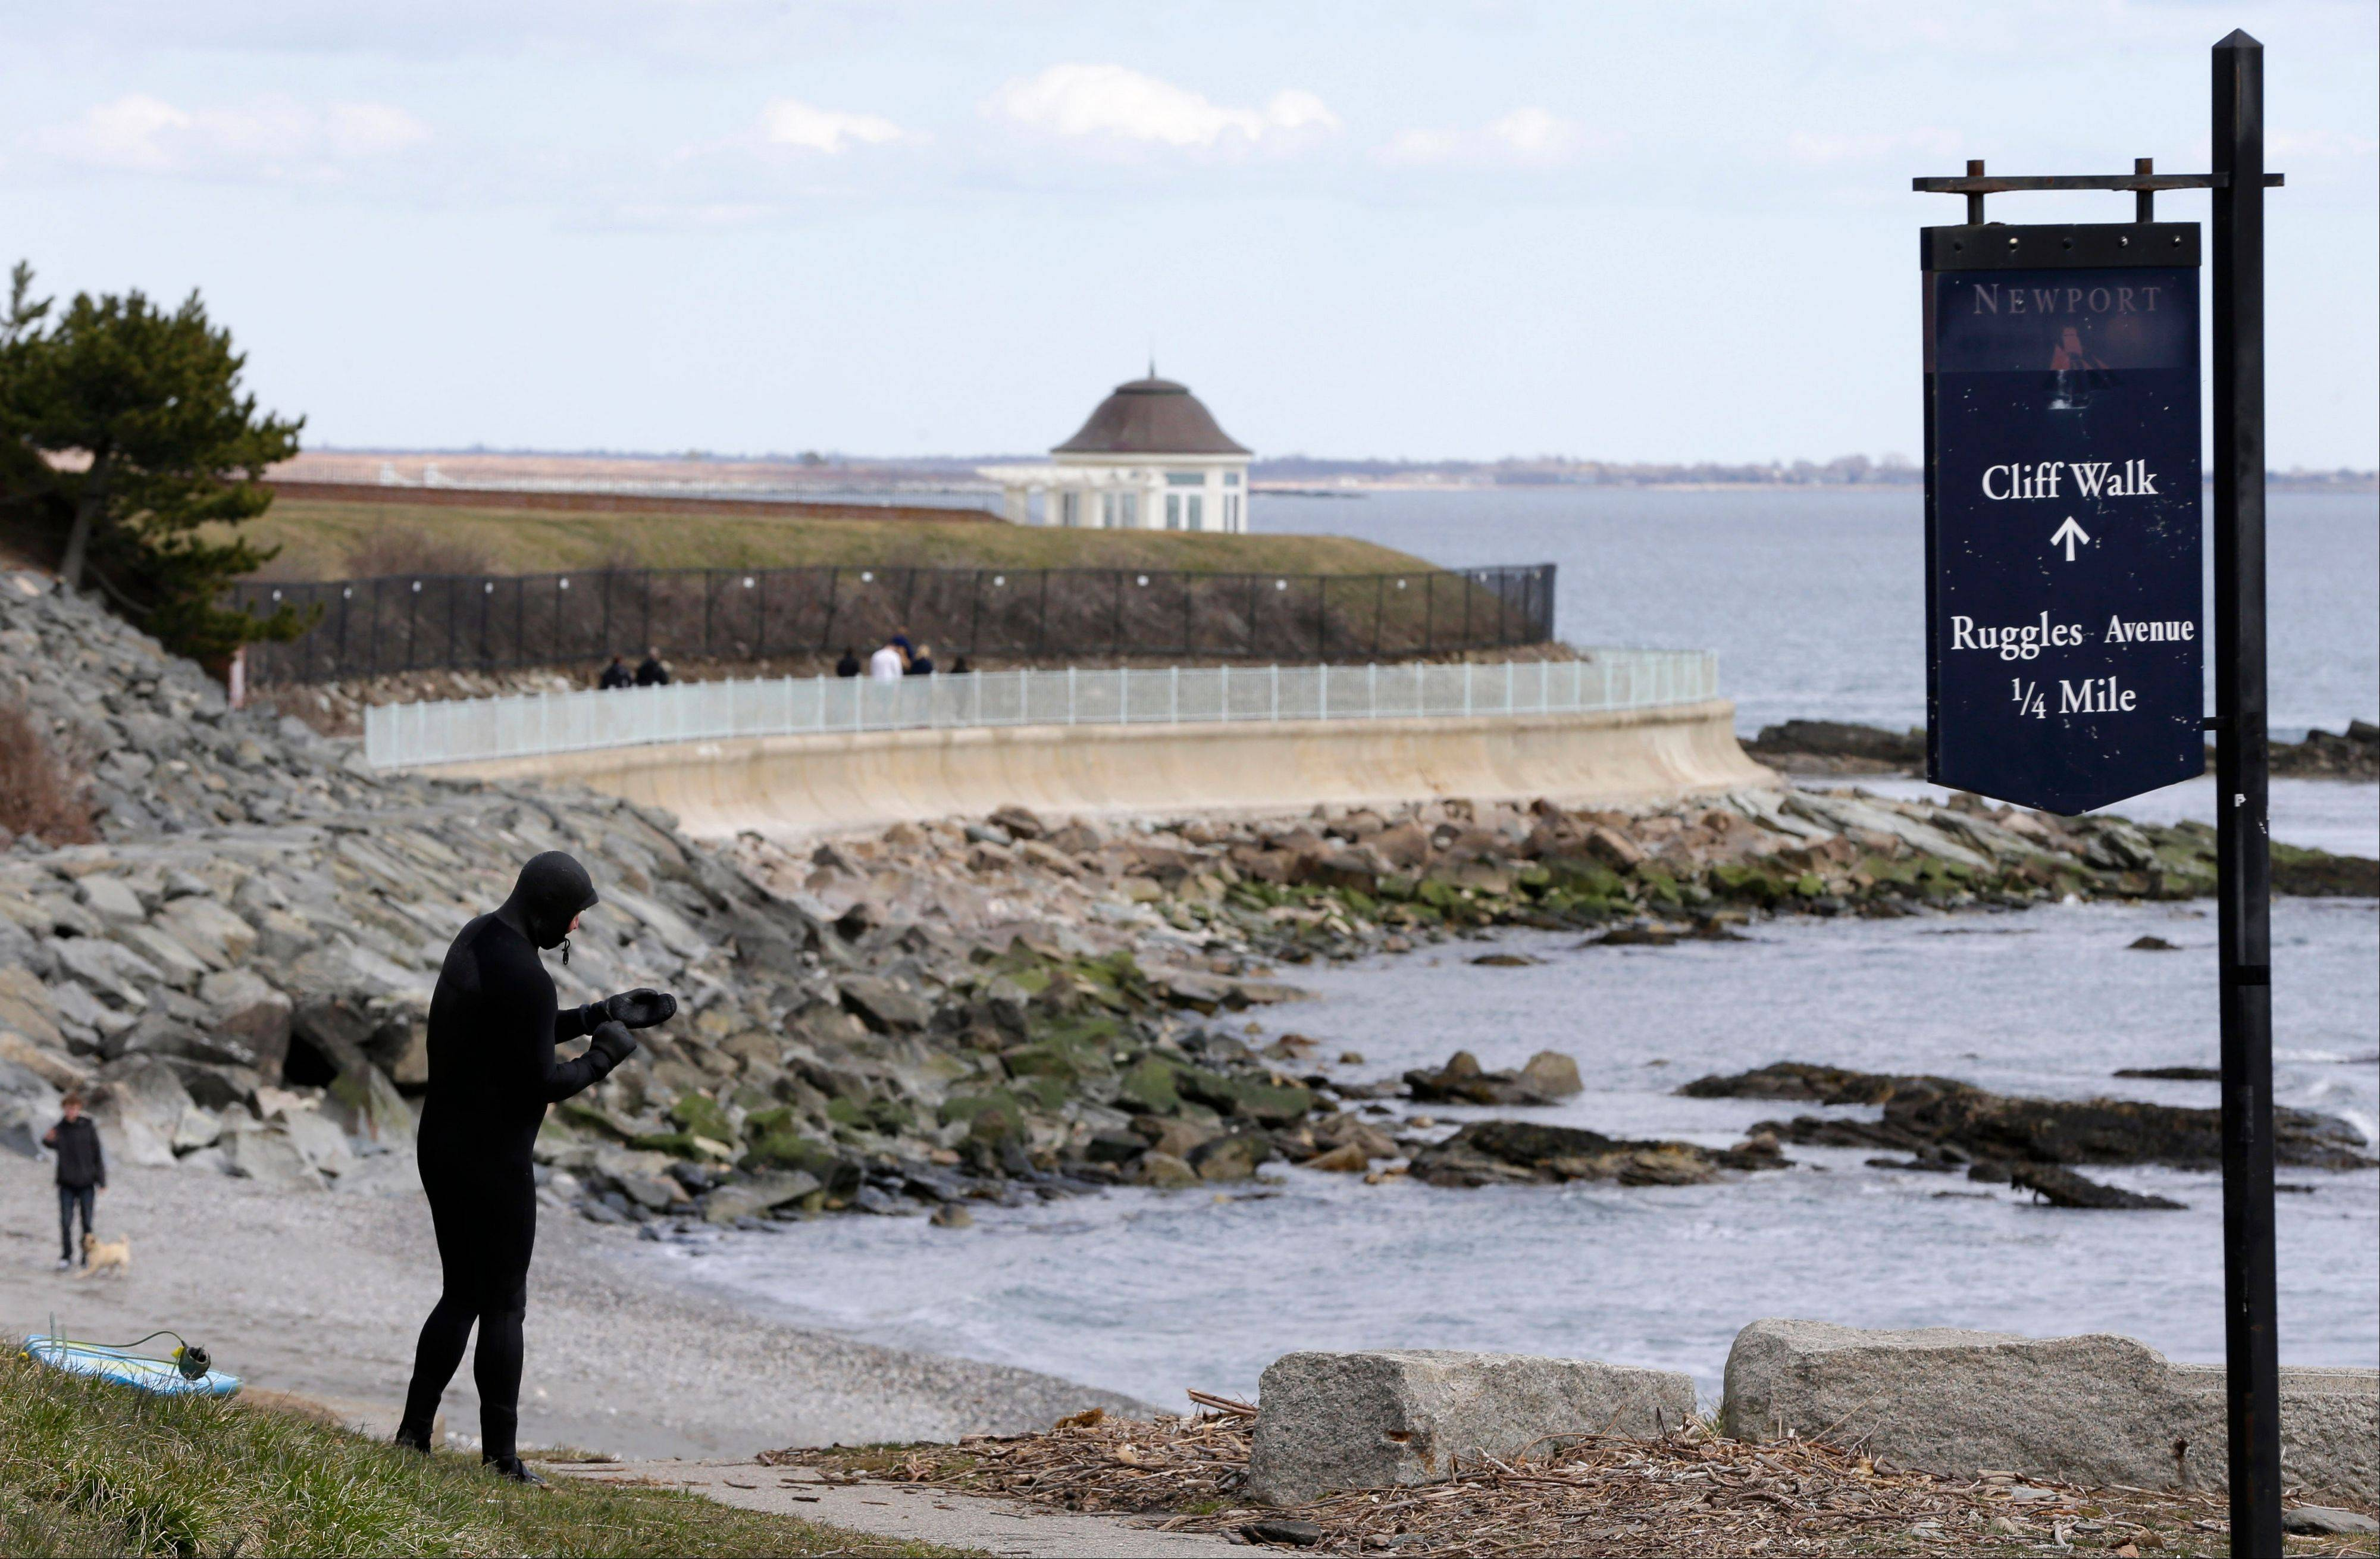 Surfer Dave Livingston, of Newport, R.I., left, removes his gloves while standing near a portion of the Cliff Walk, in Newport, R.I.